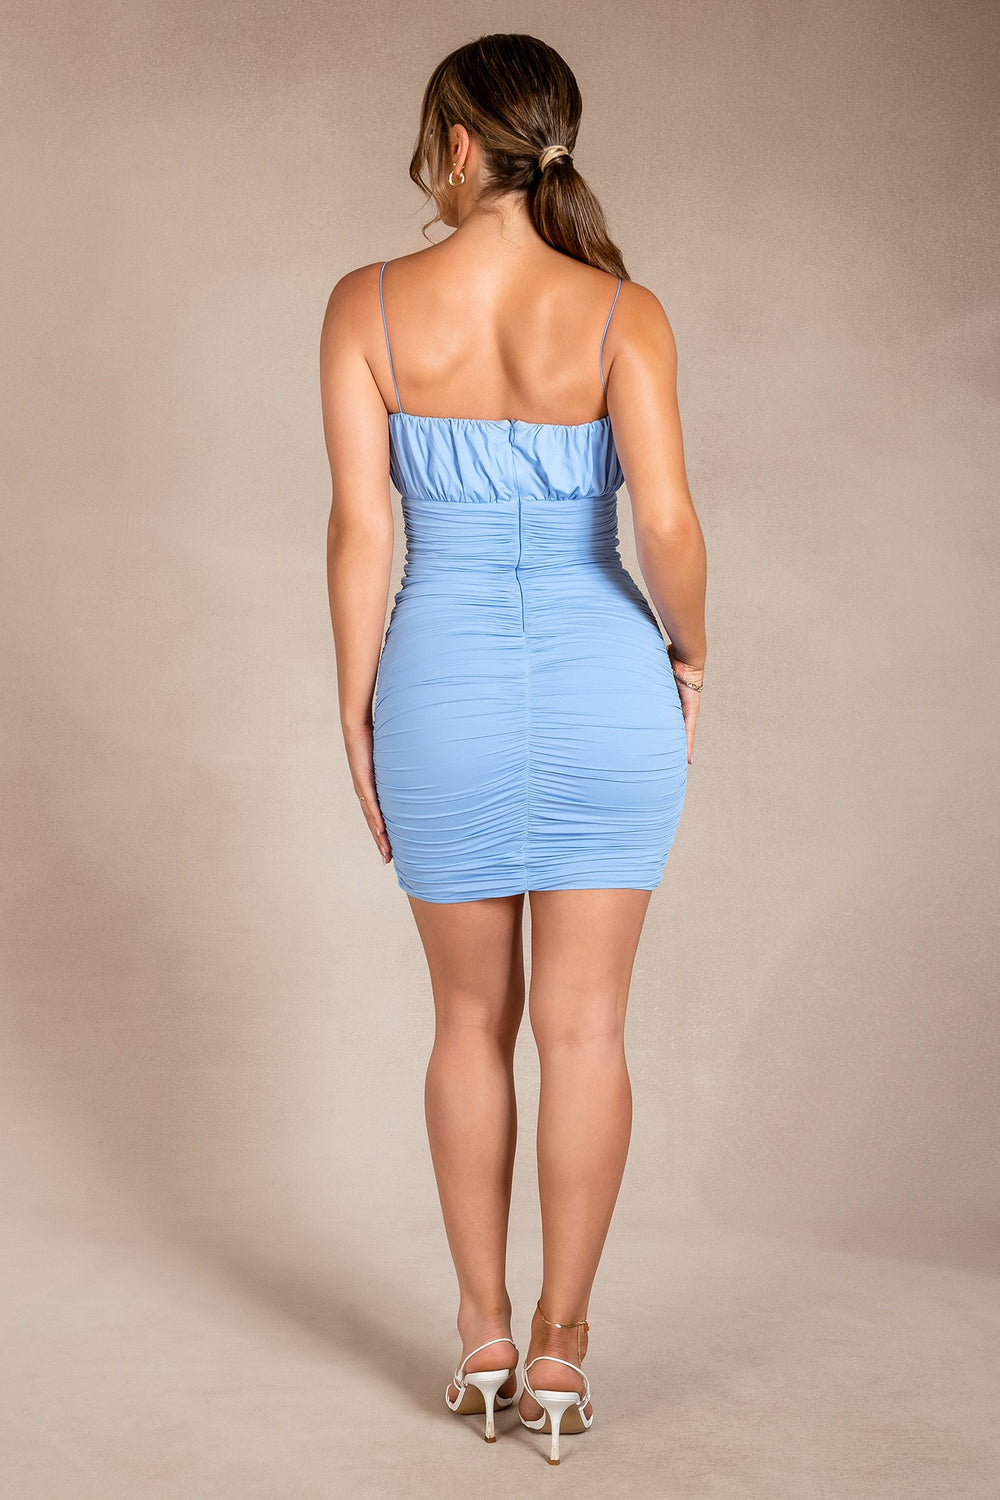 Celena Ruched Thin Strap Mini Dress - Cornflower Blue